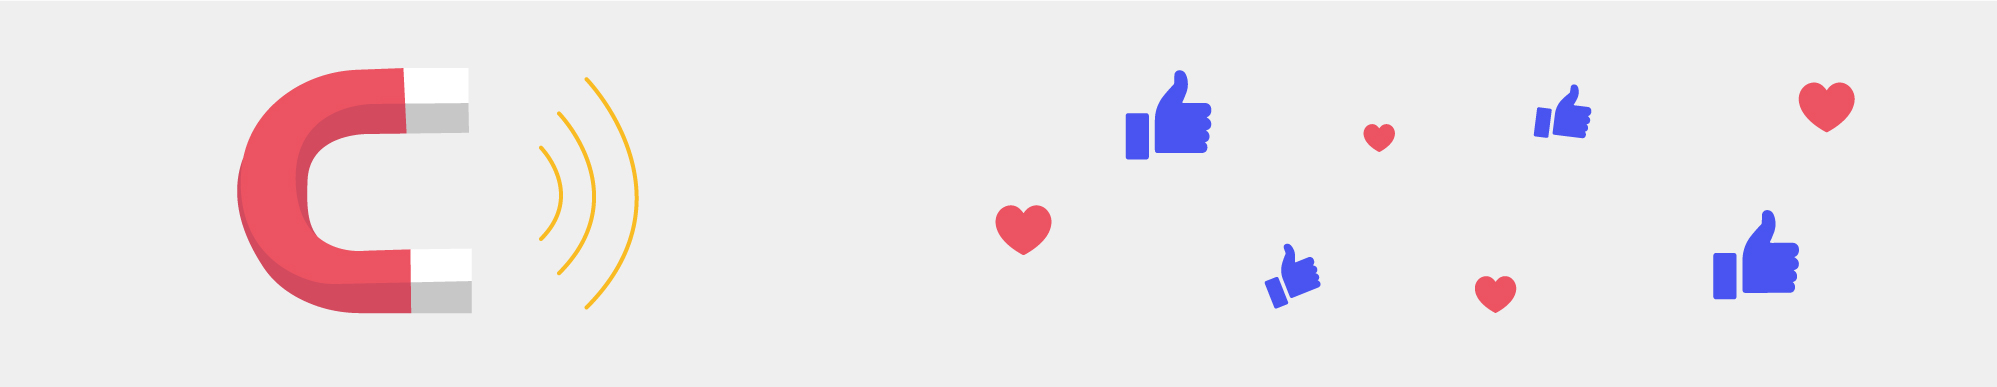 An illustration of a magnet and Facebook reactions